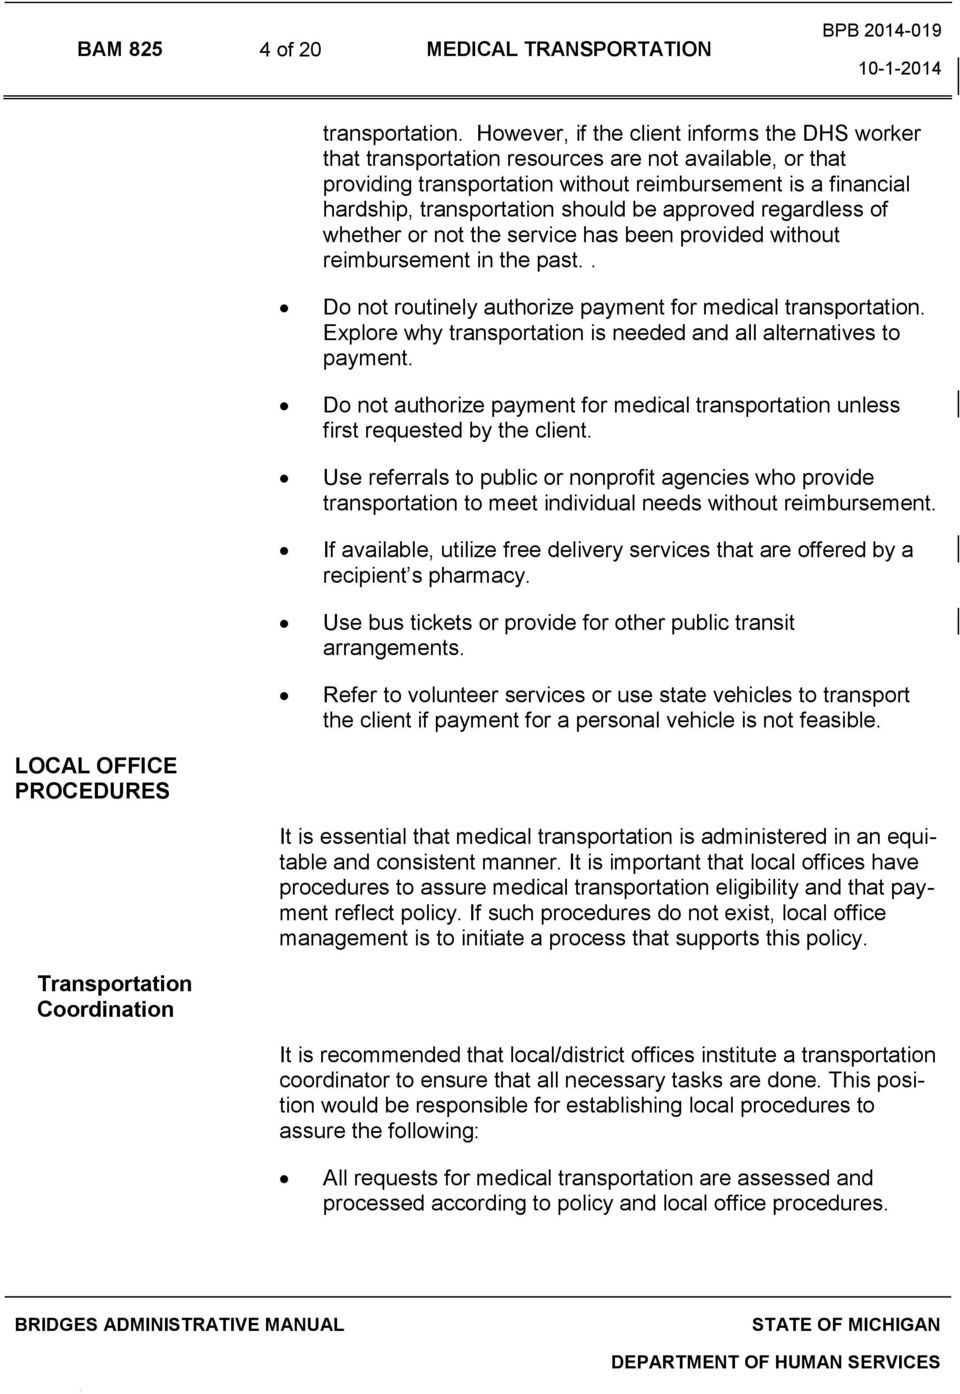 approved regardless of whether or not the service has been provided without reimbursement in the past.. Do not routinely authorize payment for medical transportation.